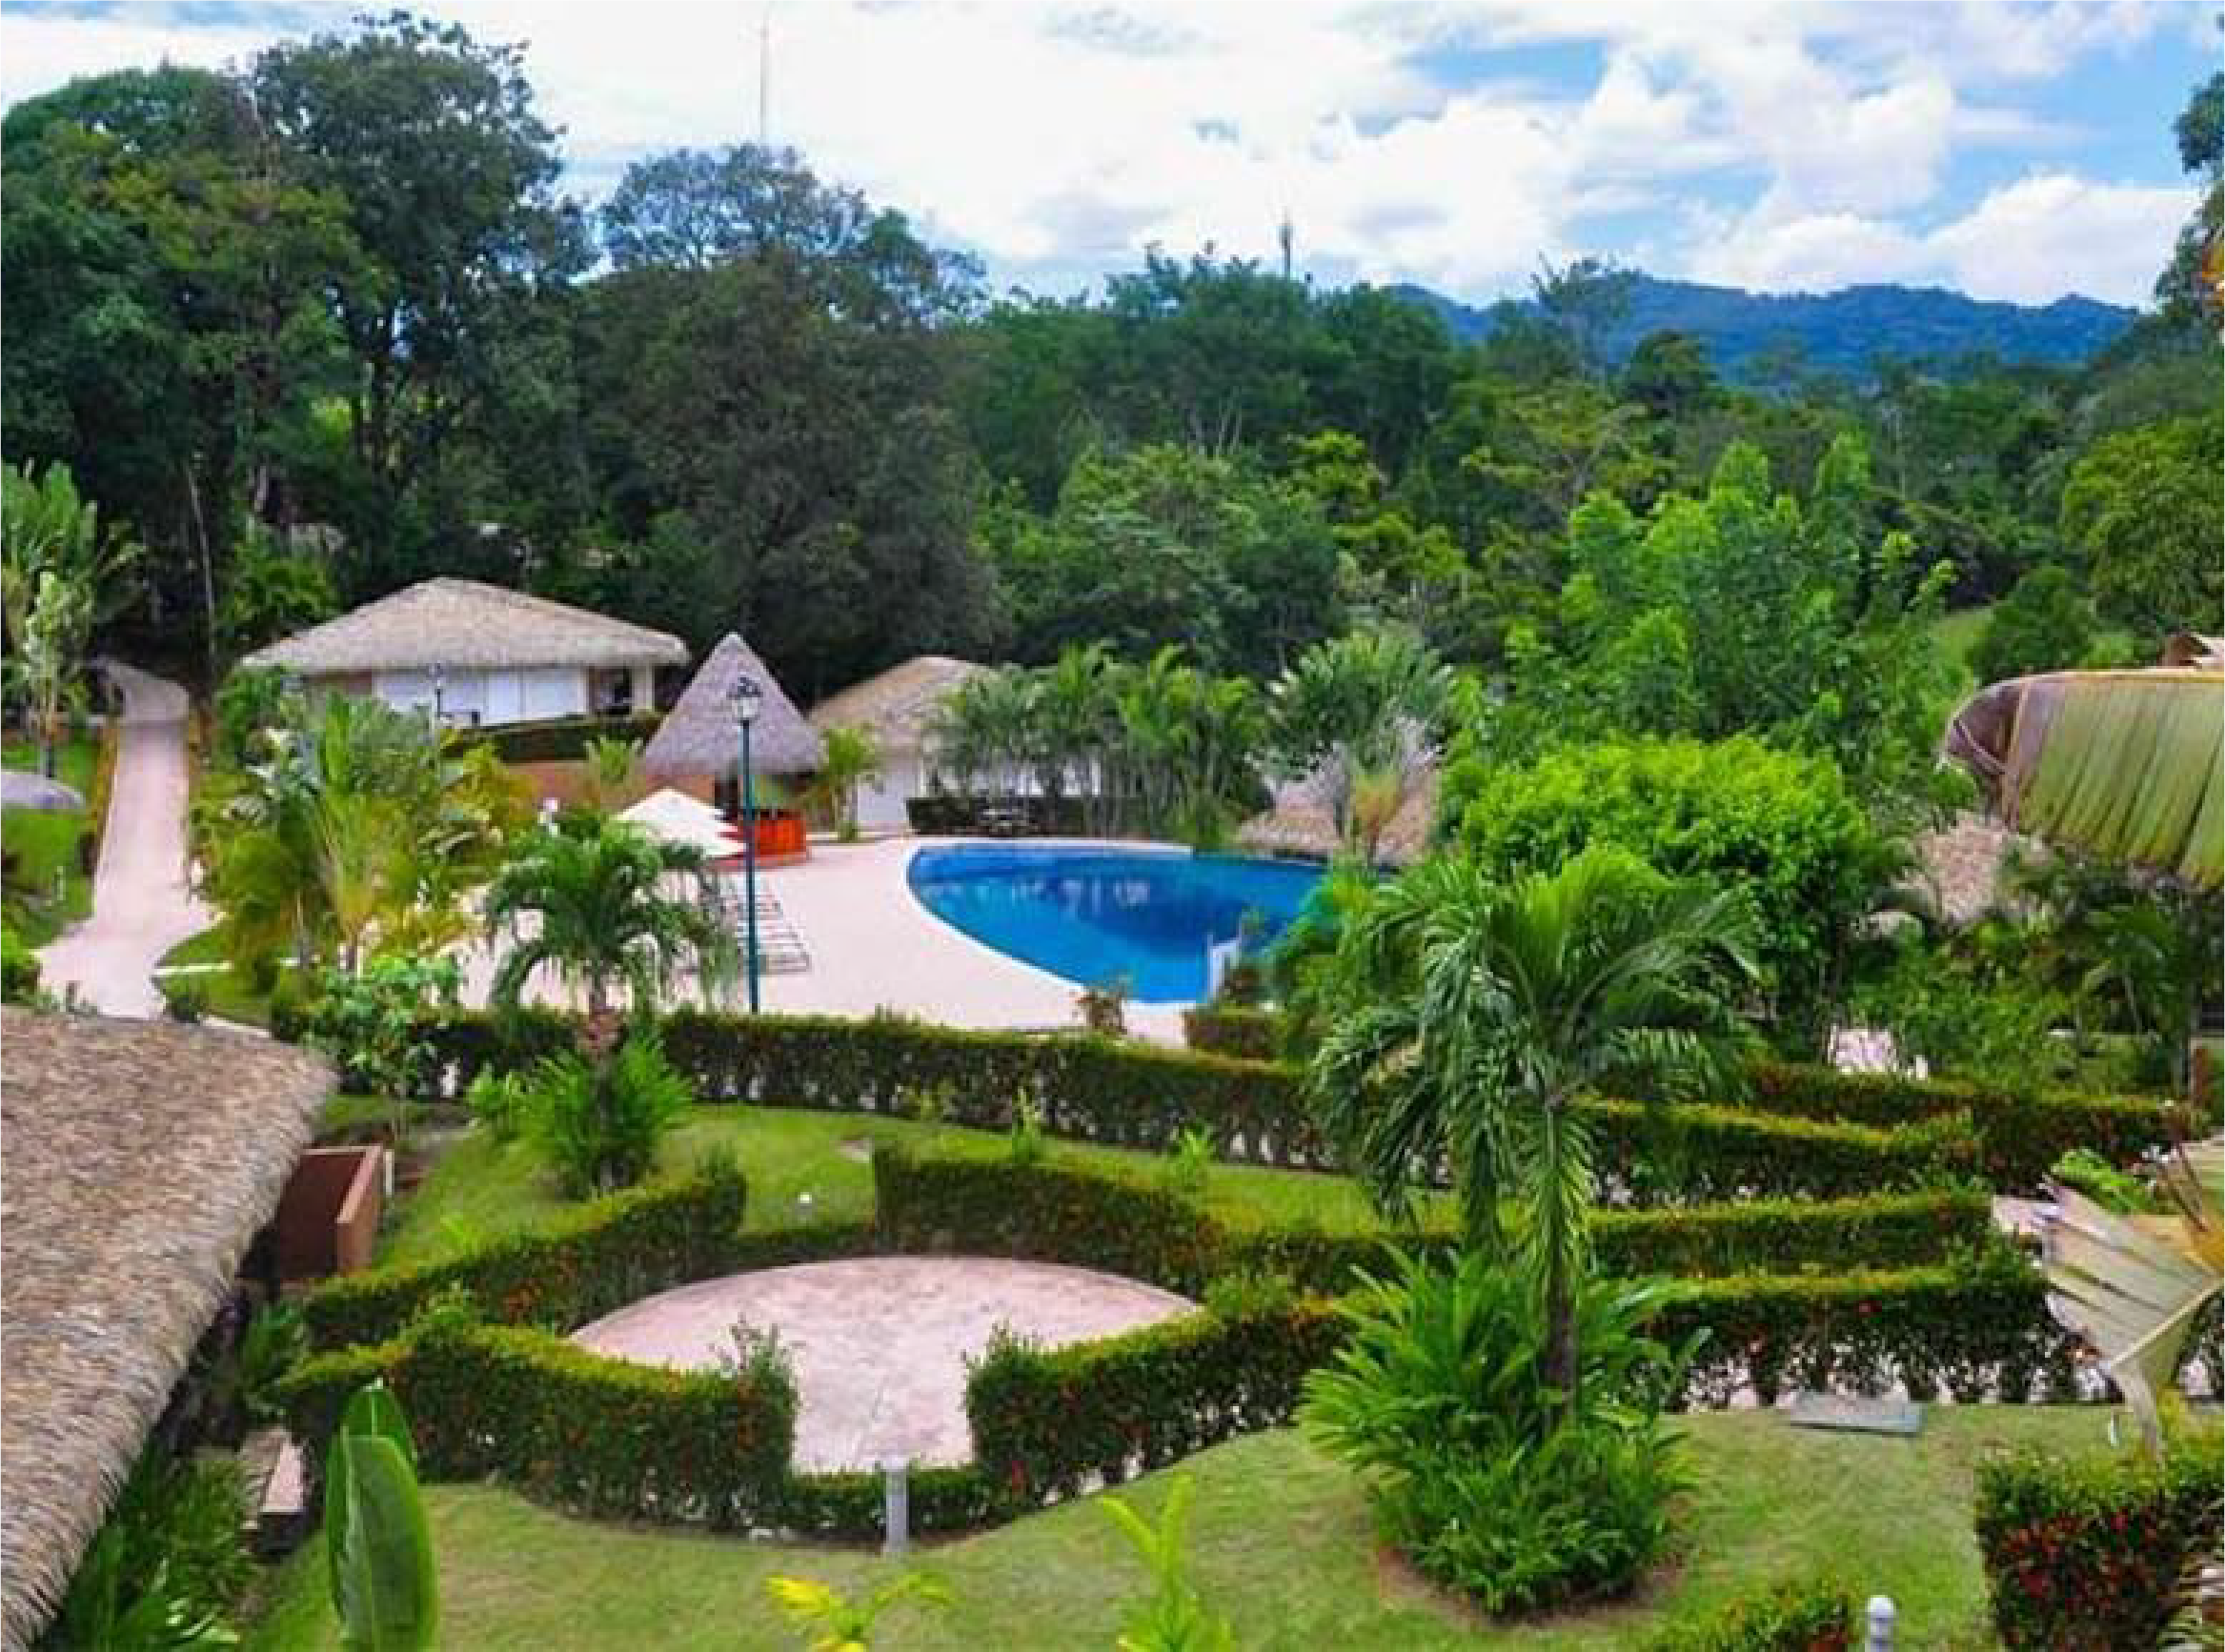 hotel Villa Mercedes Palenque - Day 5. February 21 Morning, take a trip down to Sabancuy, In the afternoon, visit the archaeological site of Palenque. O/N Palenque